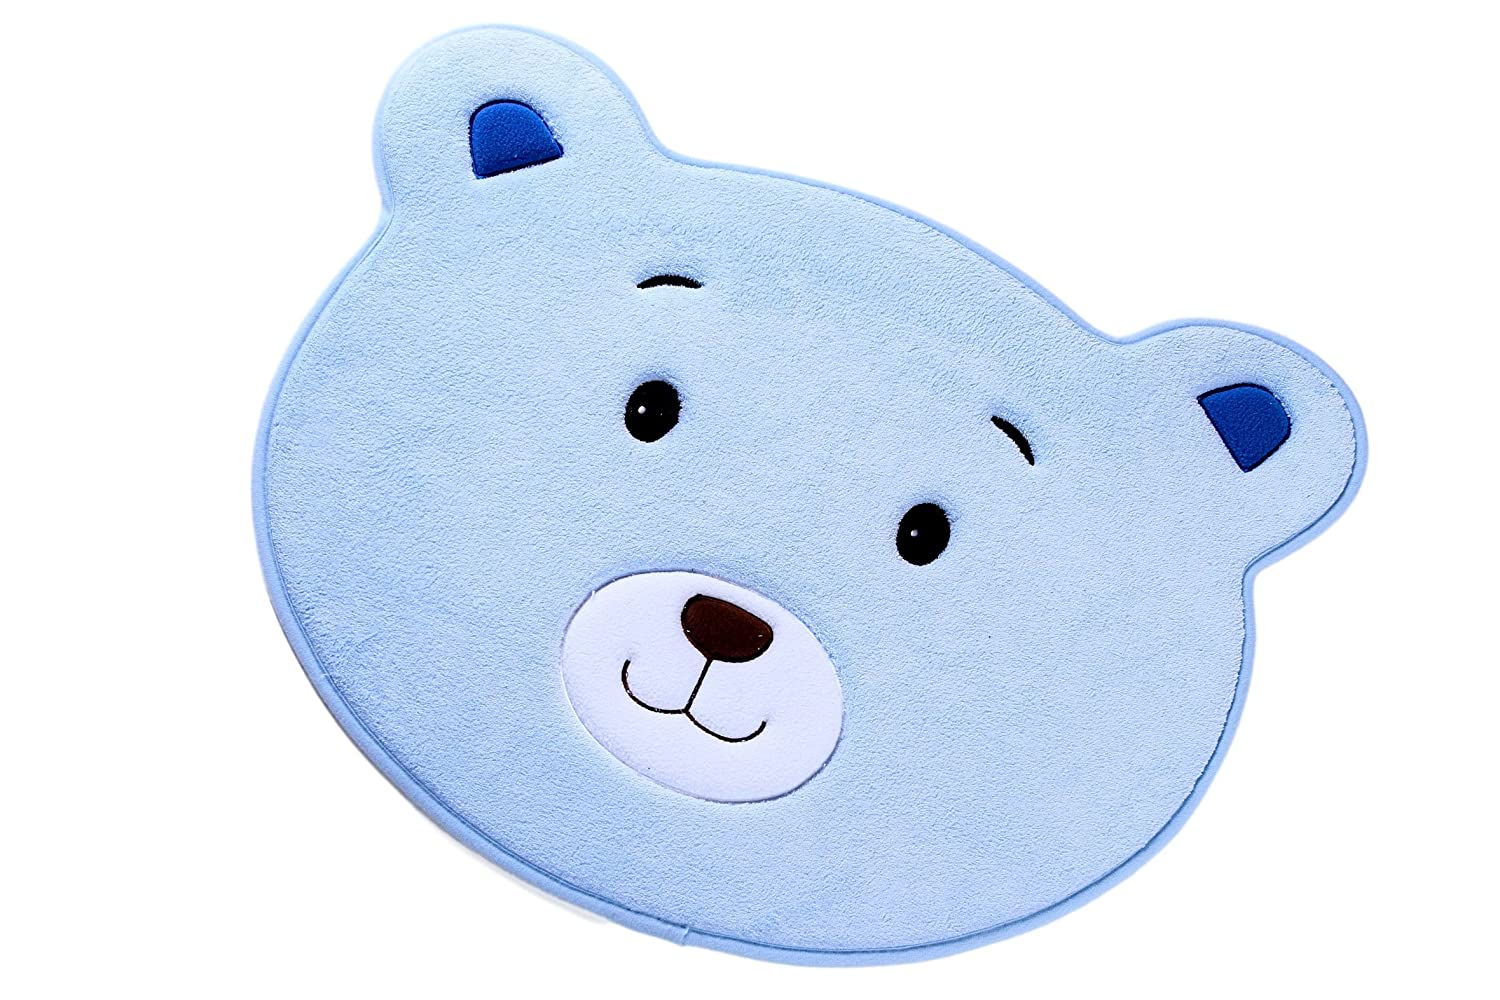 Small Bath Mat Accent Rug For Home Kitchen Toy Room or Nursery | Non-Slip Line Dry Washable | Colorful Animal Designs Delight Toddlers Babies Children and Adults (Light Blue 29 x 20 x 0.25 inches) bozemanbabycompany SYNCHKG107639